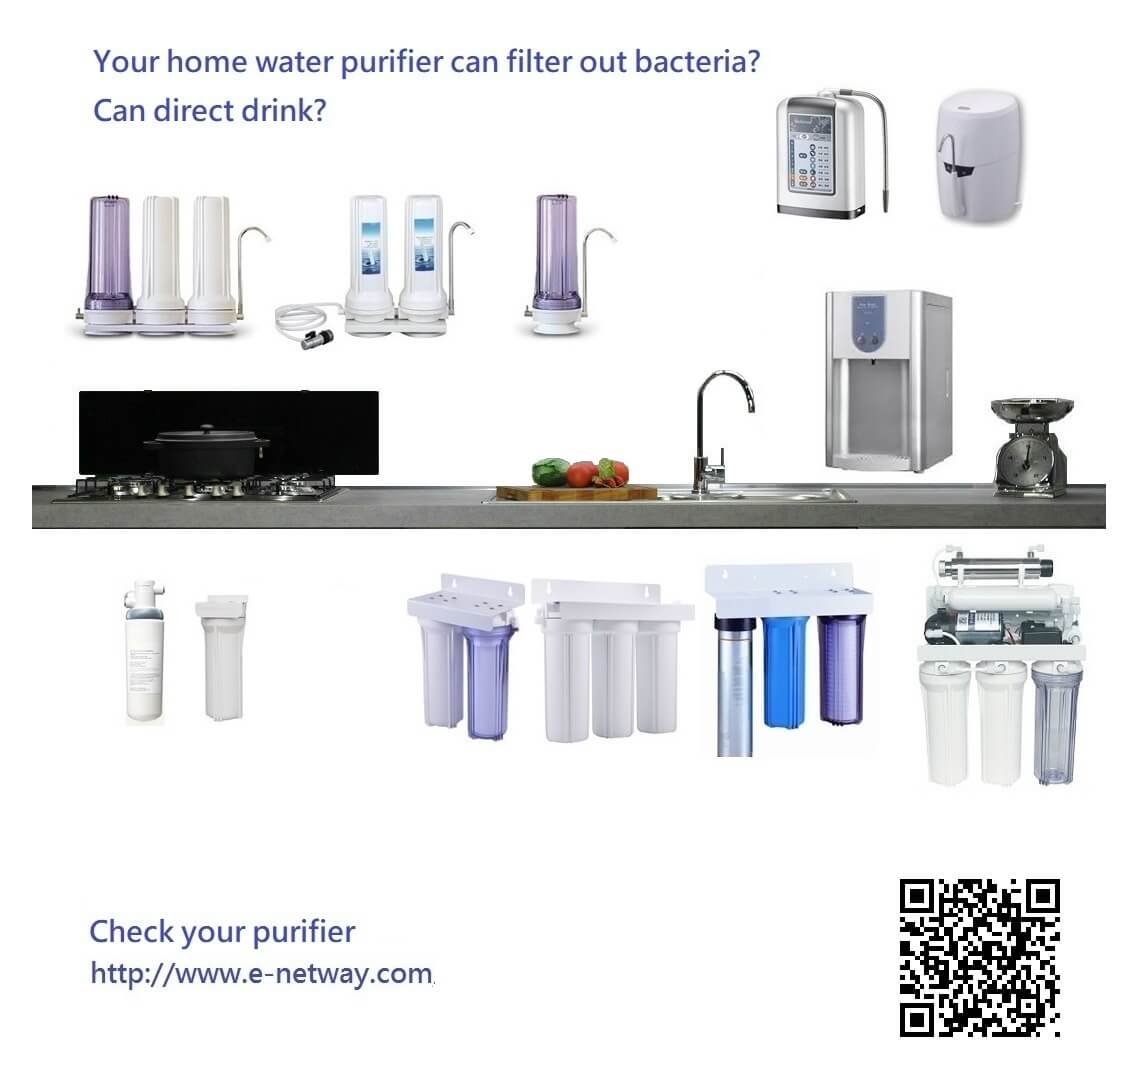 check purifier,water filtration,water purification,water purifier,miner,alkaline water ionizer,water cartridge